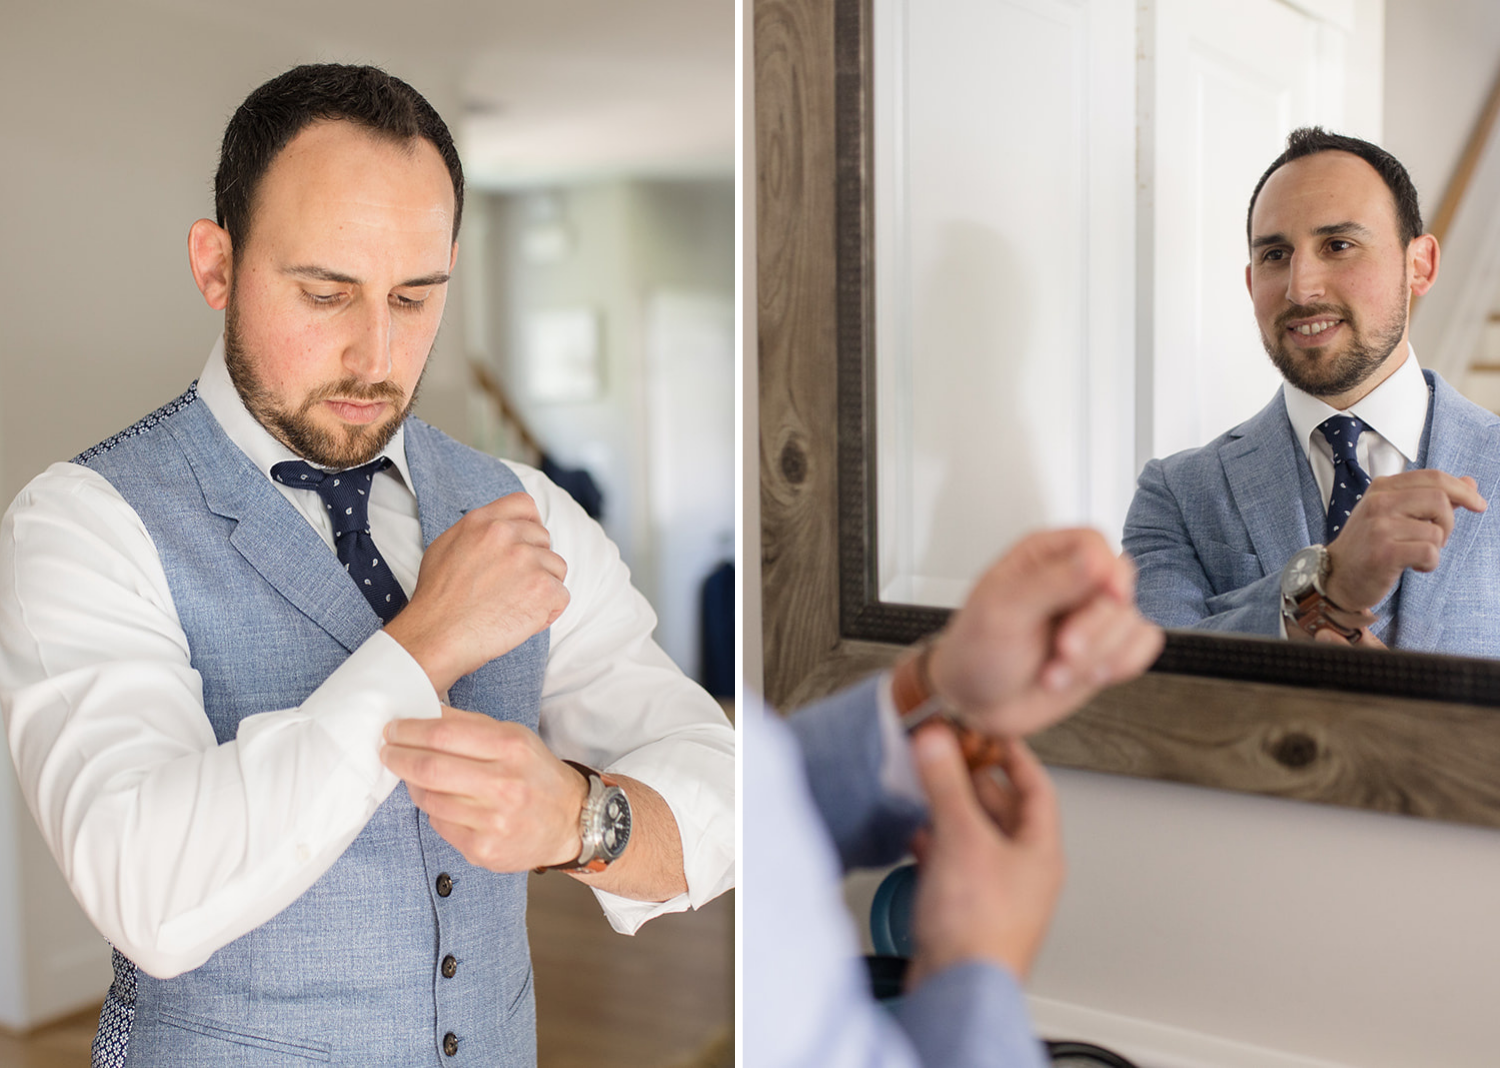 groom fixing his cuff links and looking at himself in the mirror